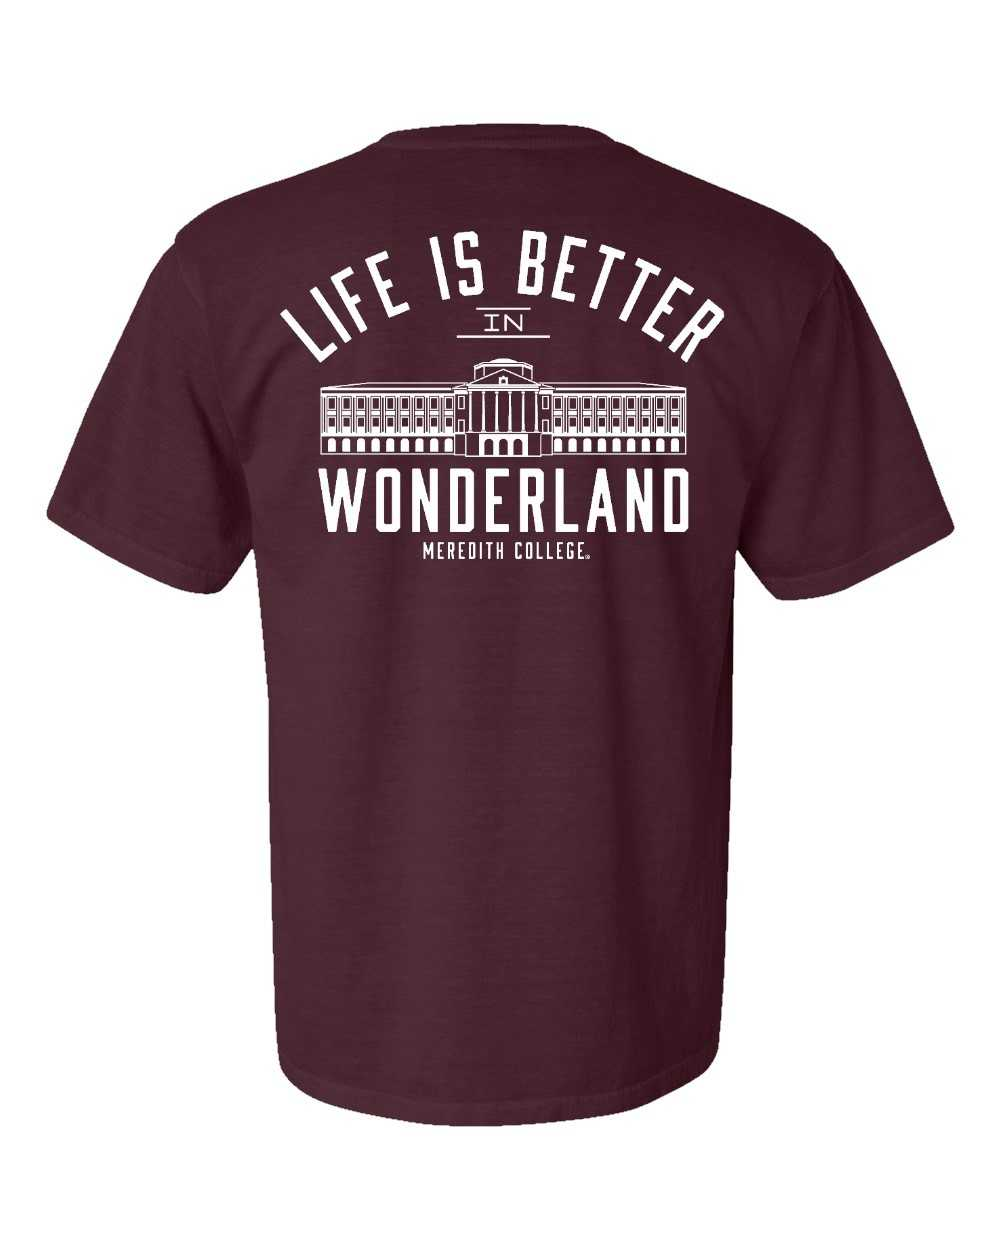 Alternative Image for the Comfort Colors T-Shirt, Vineyard, Life is Better in Wonderland product